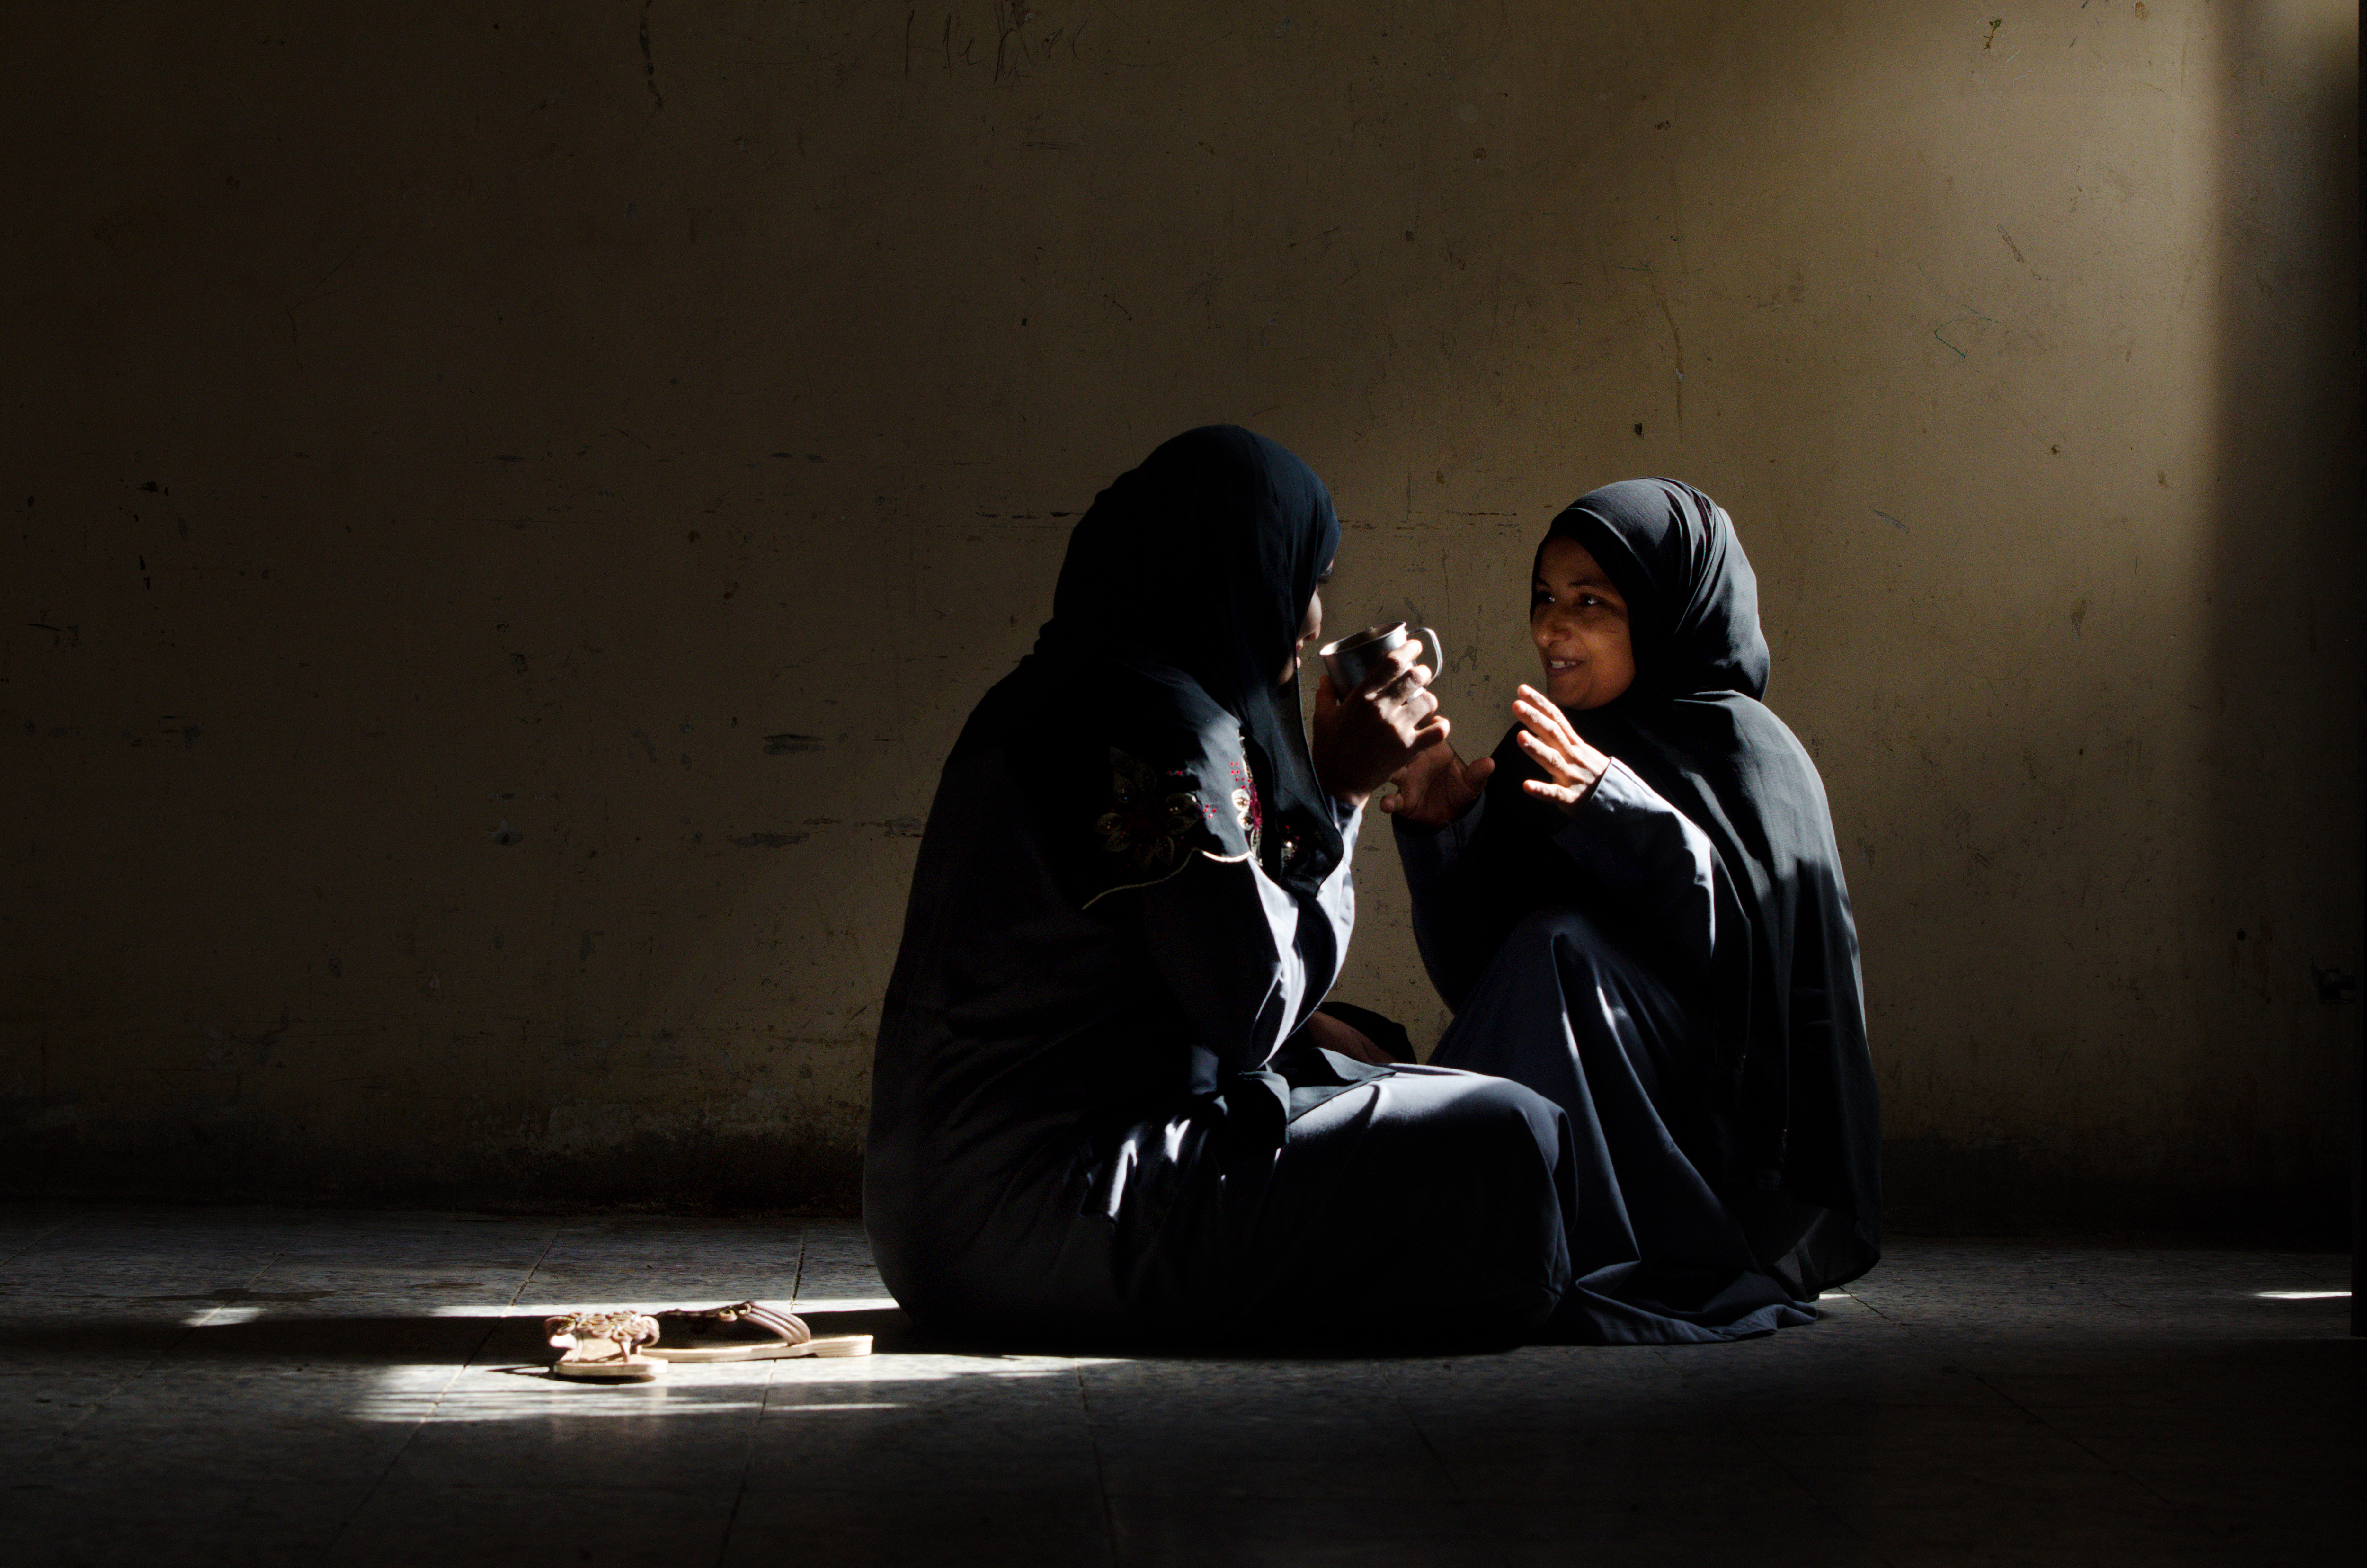 Young women in Hodeidah prison: Mariam, 19 years old, (right), talking to her friend Hafsah, age 27. Photo credit: © Amira Al-Sharif/Progressio